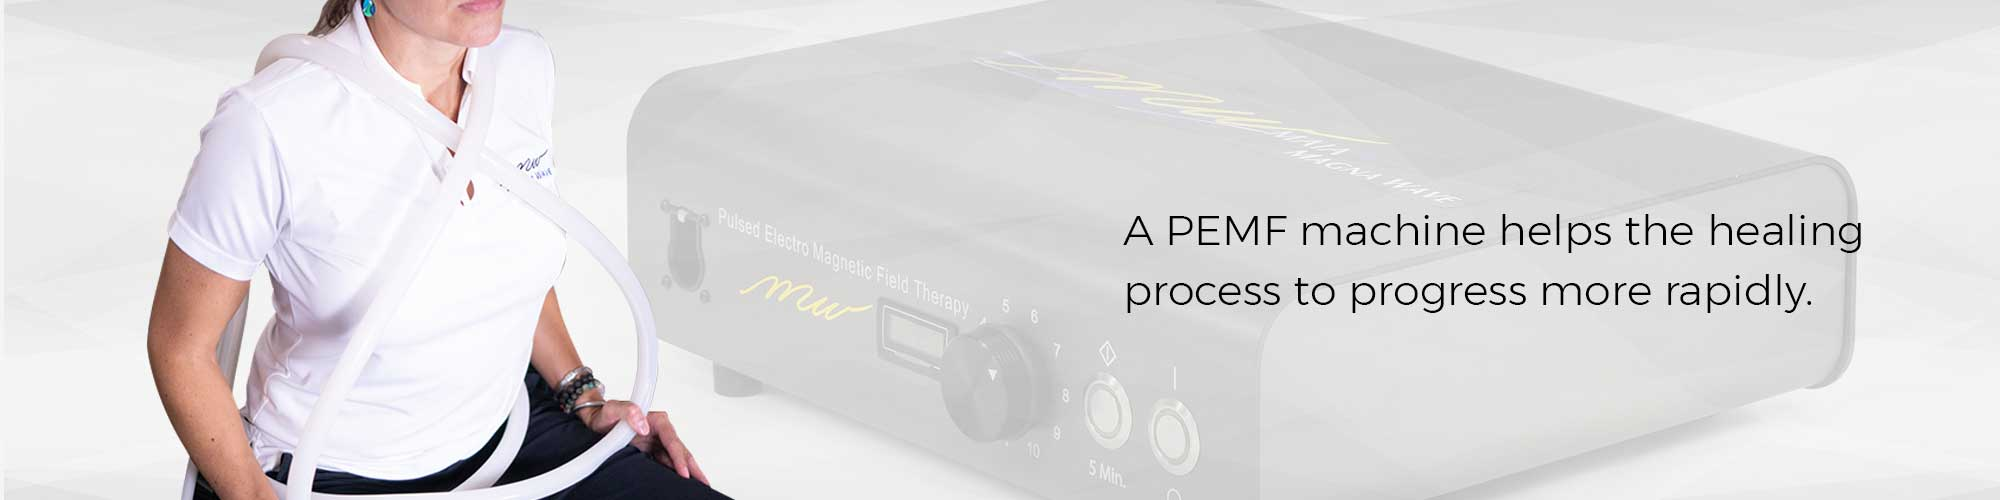 A PEMF machine helps the healing process to progress more rapidly.